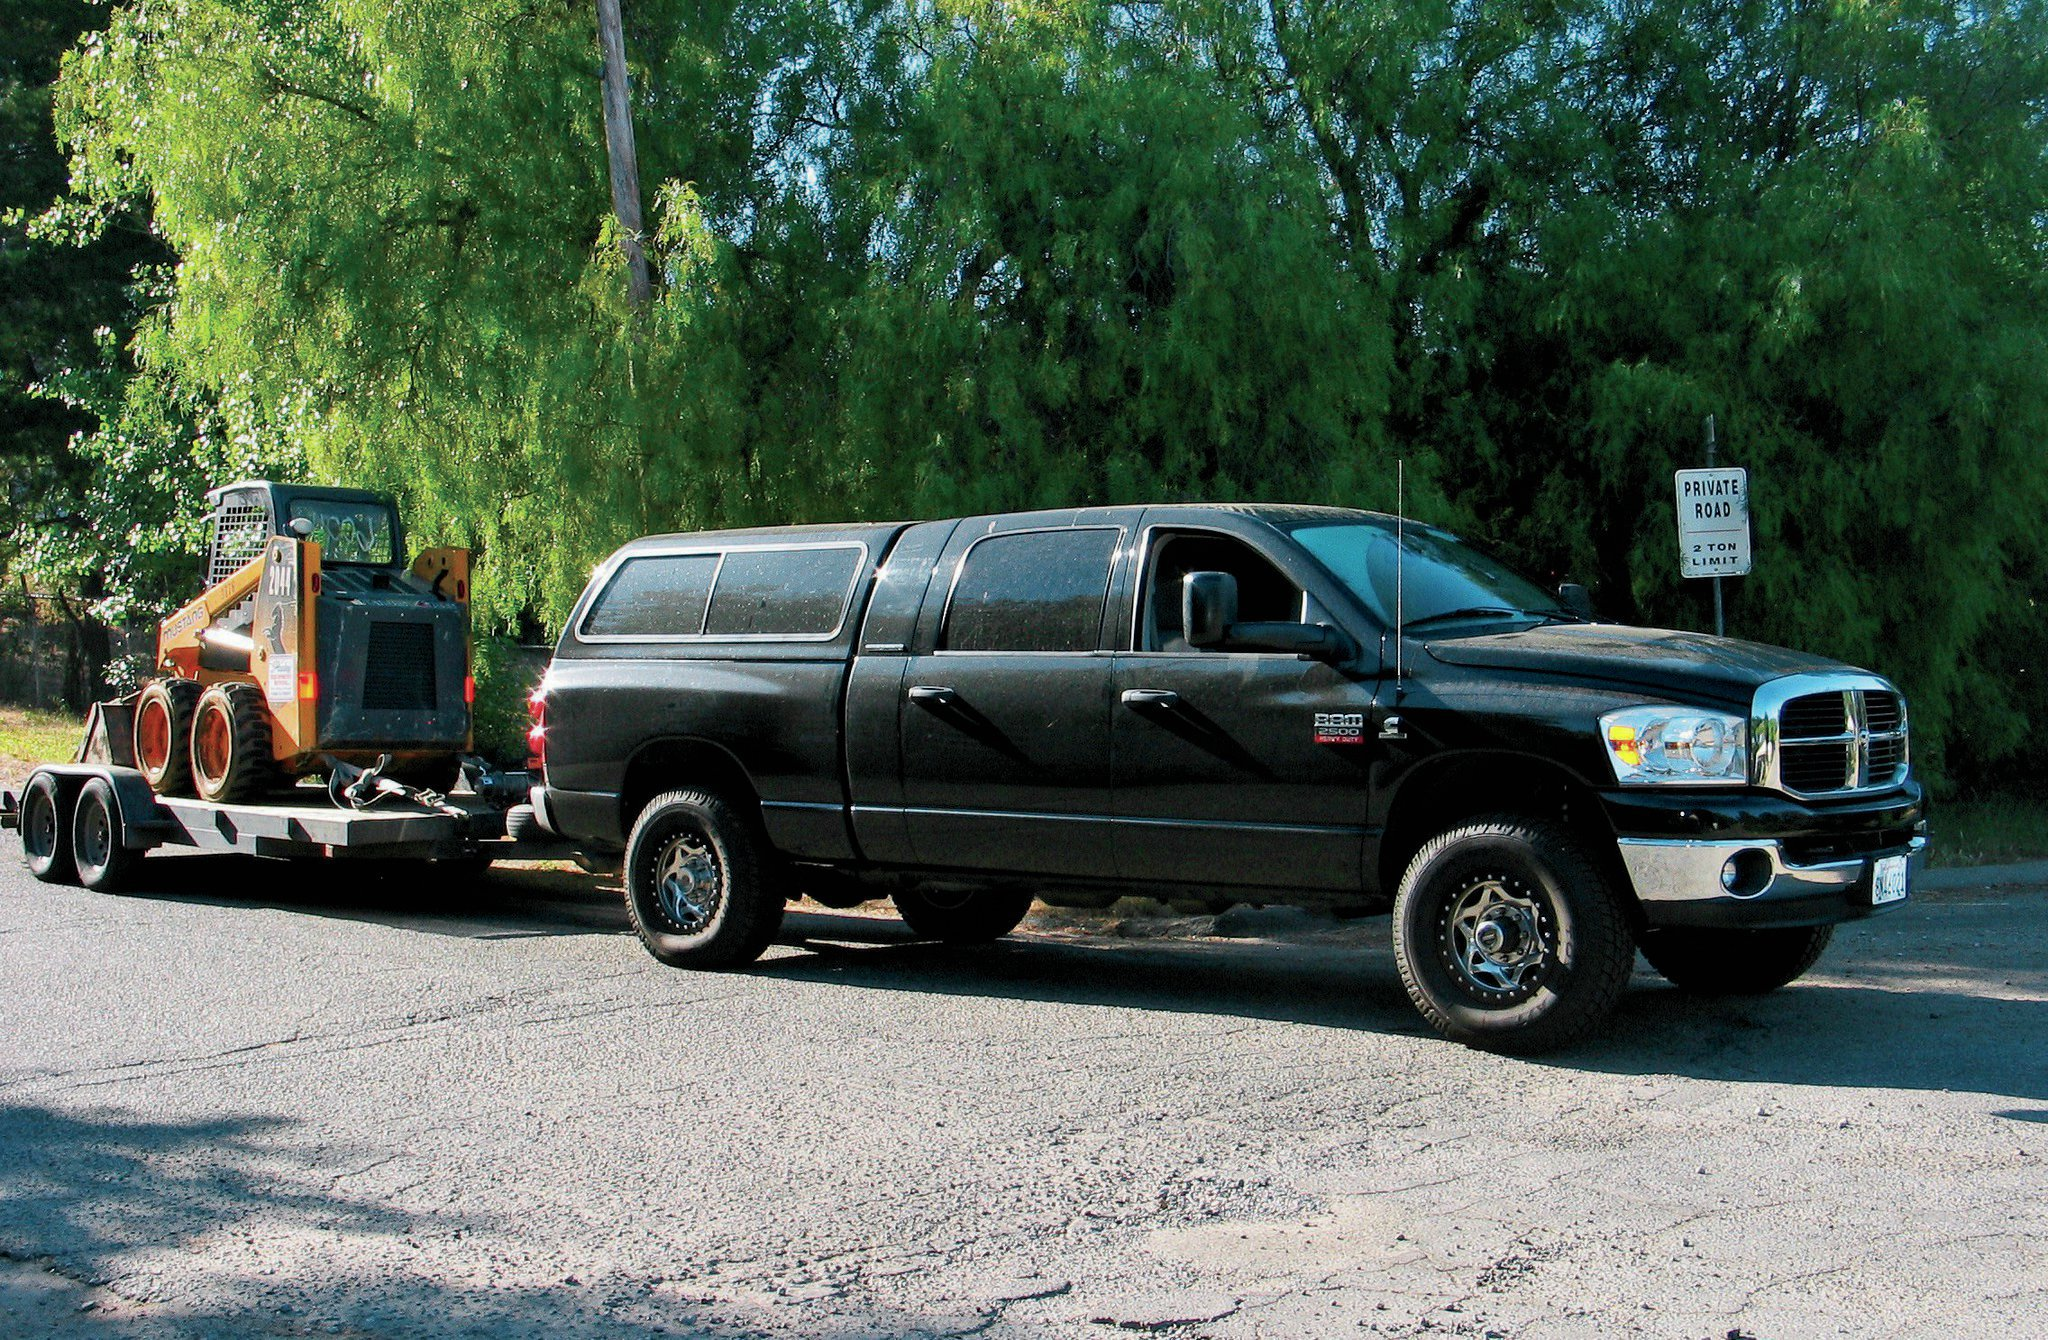 Big Three on a Budget: What's the Best Pre-Owned 3/4-Ton 4x4 Truck